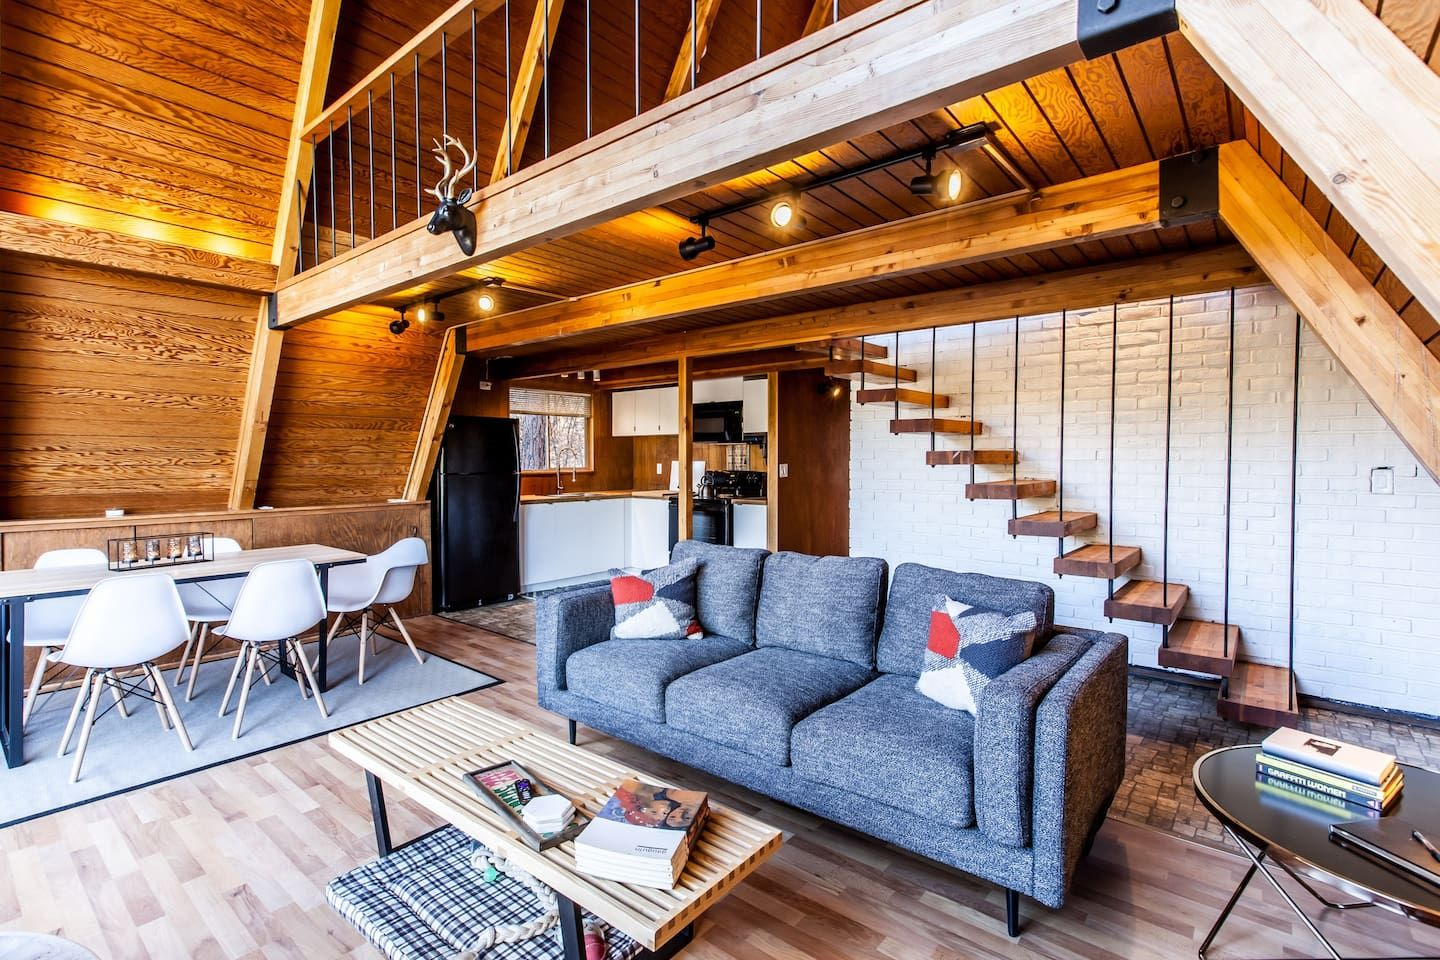 Mid century modern a frame loft up in the trees houses for rent in running springs california united states